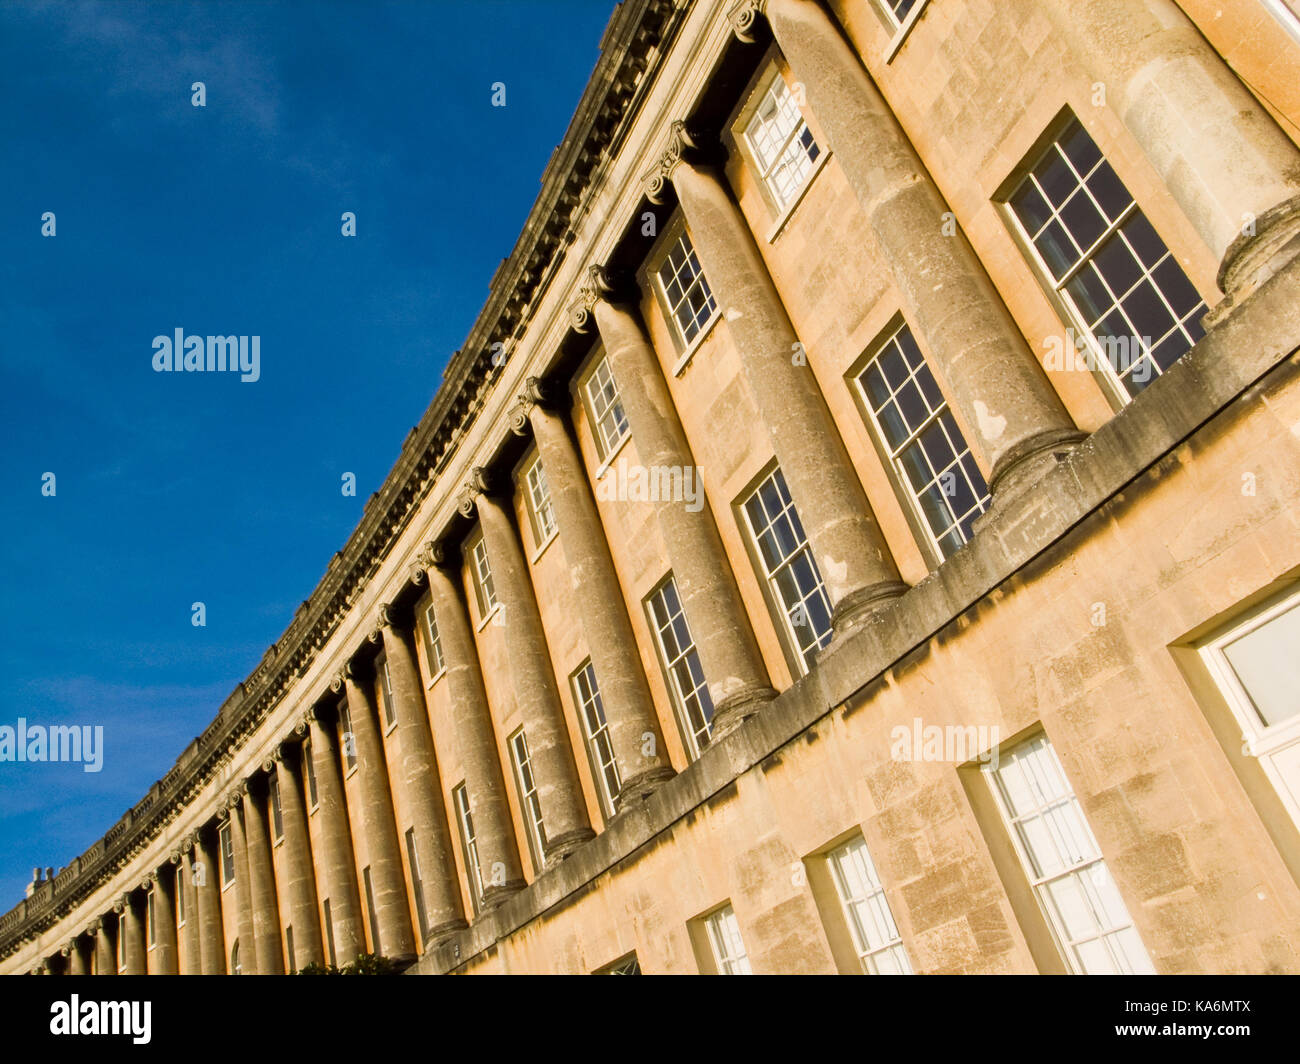 Section of the Georgian masterpiece The Royal Crescent in Bath,Somerset, England, UK. Stock Photo